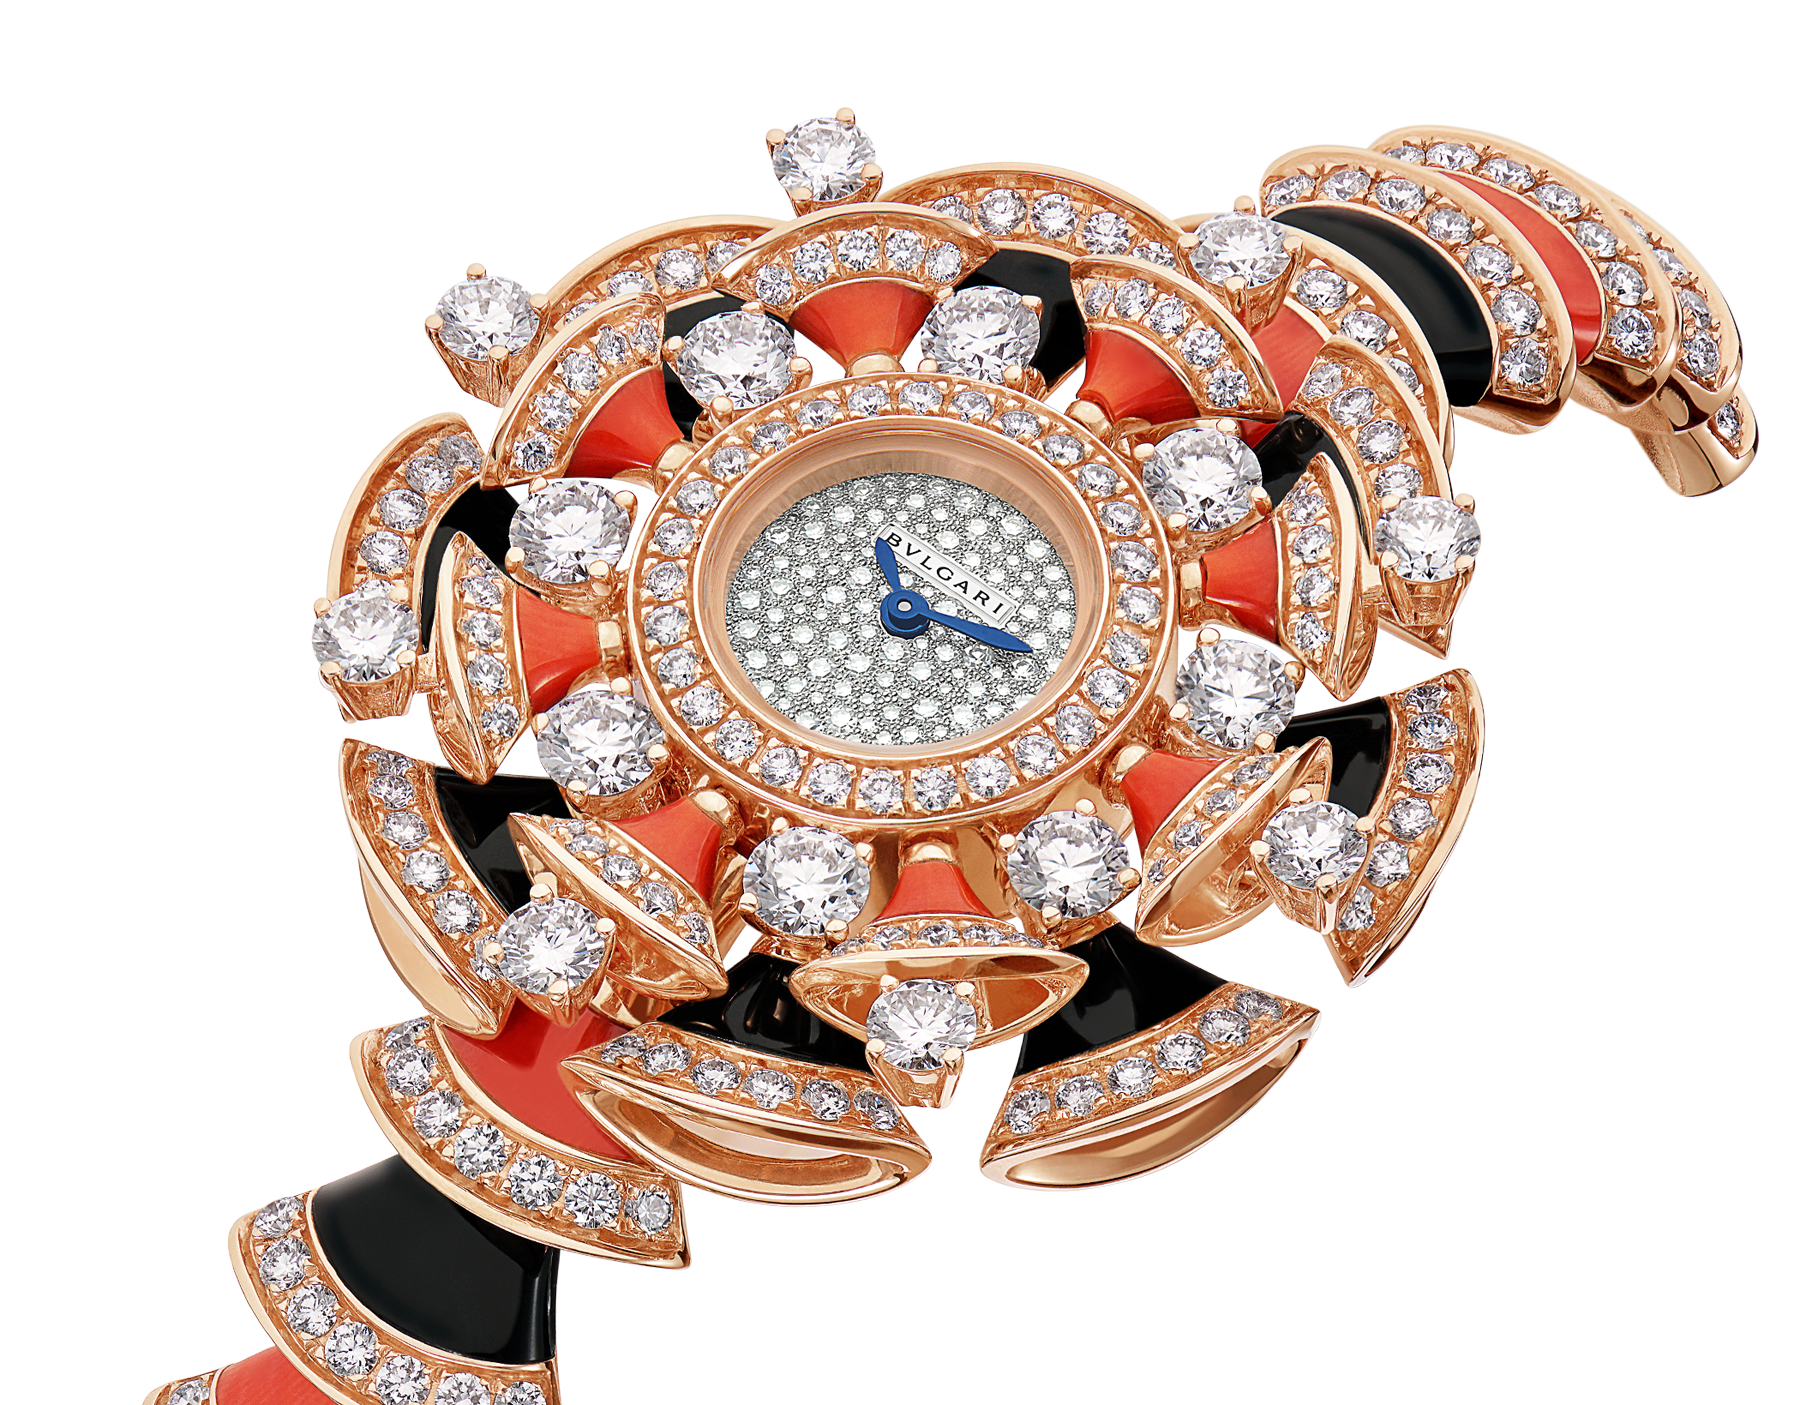 DIVAS' DREAM watch in 18 kt rose gold case and bracelet, both set with brilliant-cut diamonds, onyx and coral rubrum elements, with snow pavé dial 102422 image 2